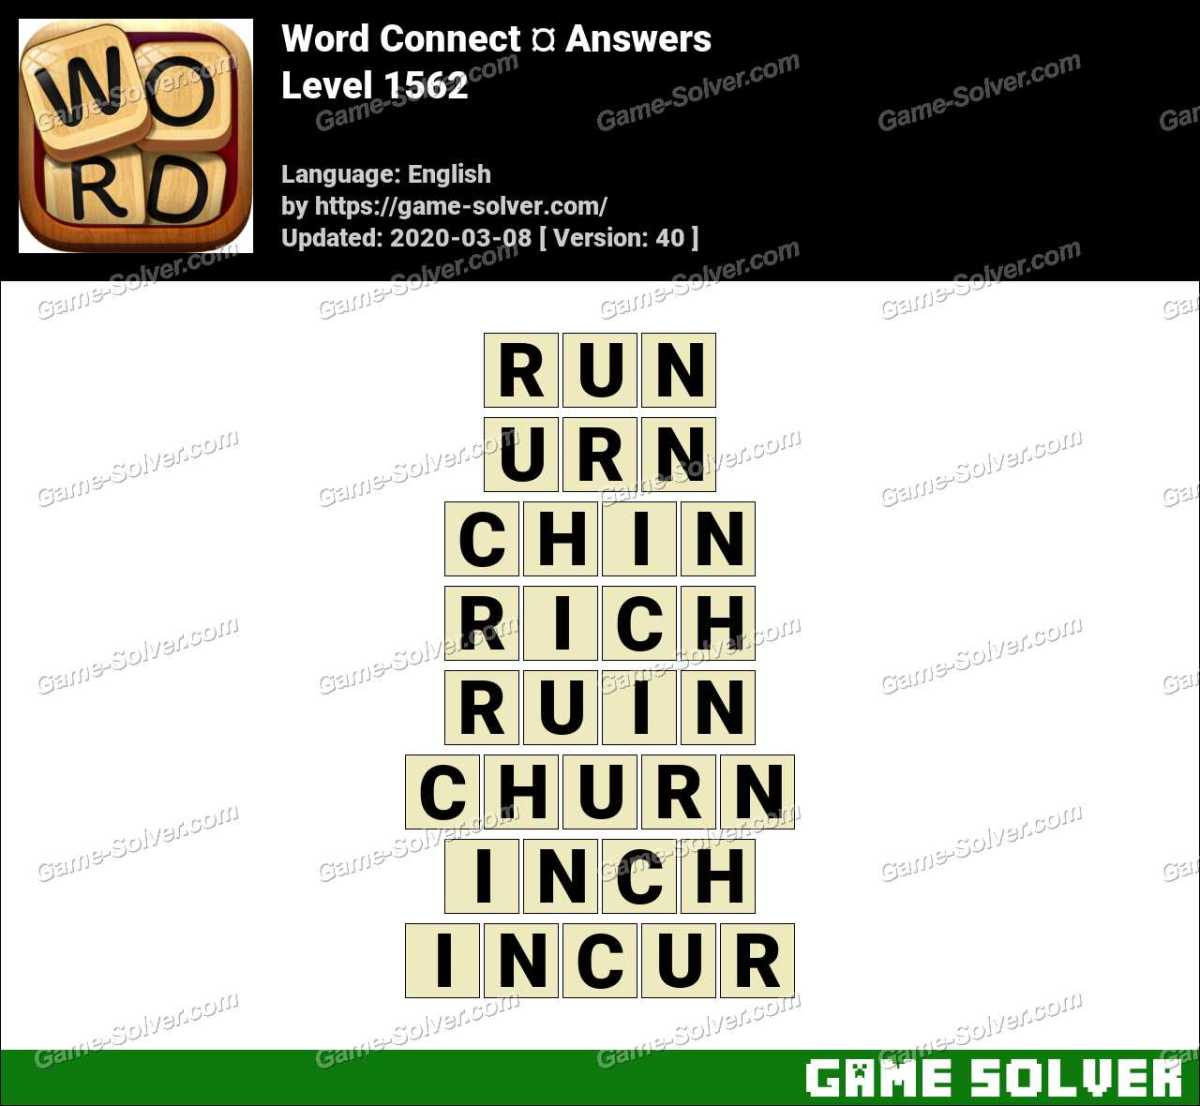 Word Connect Level 1562 Answers